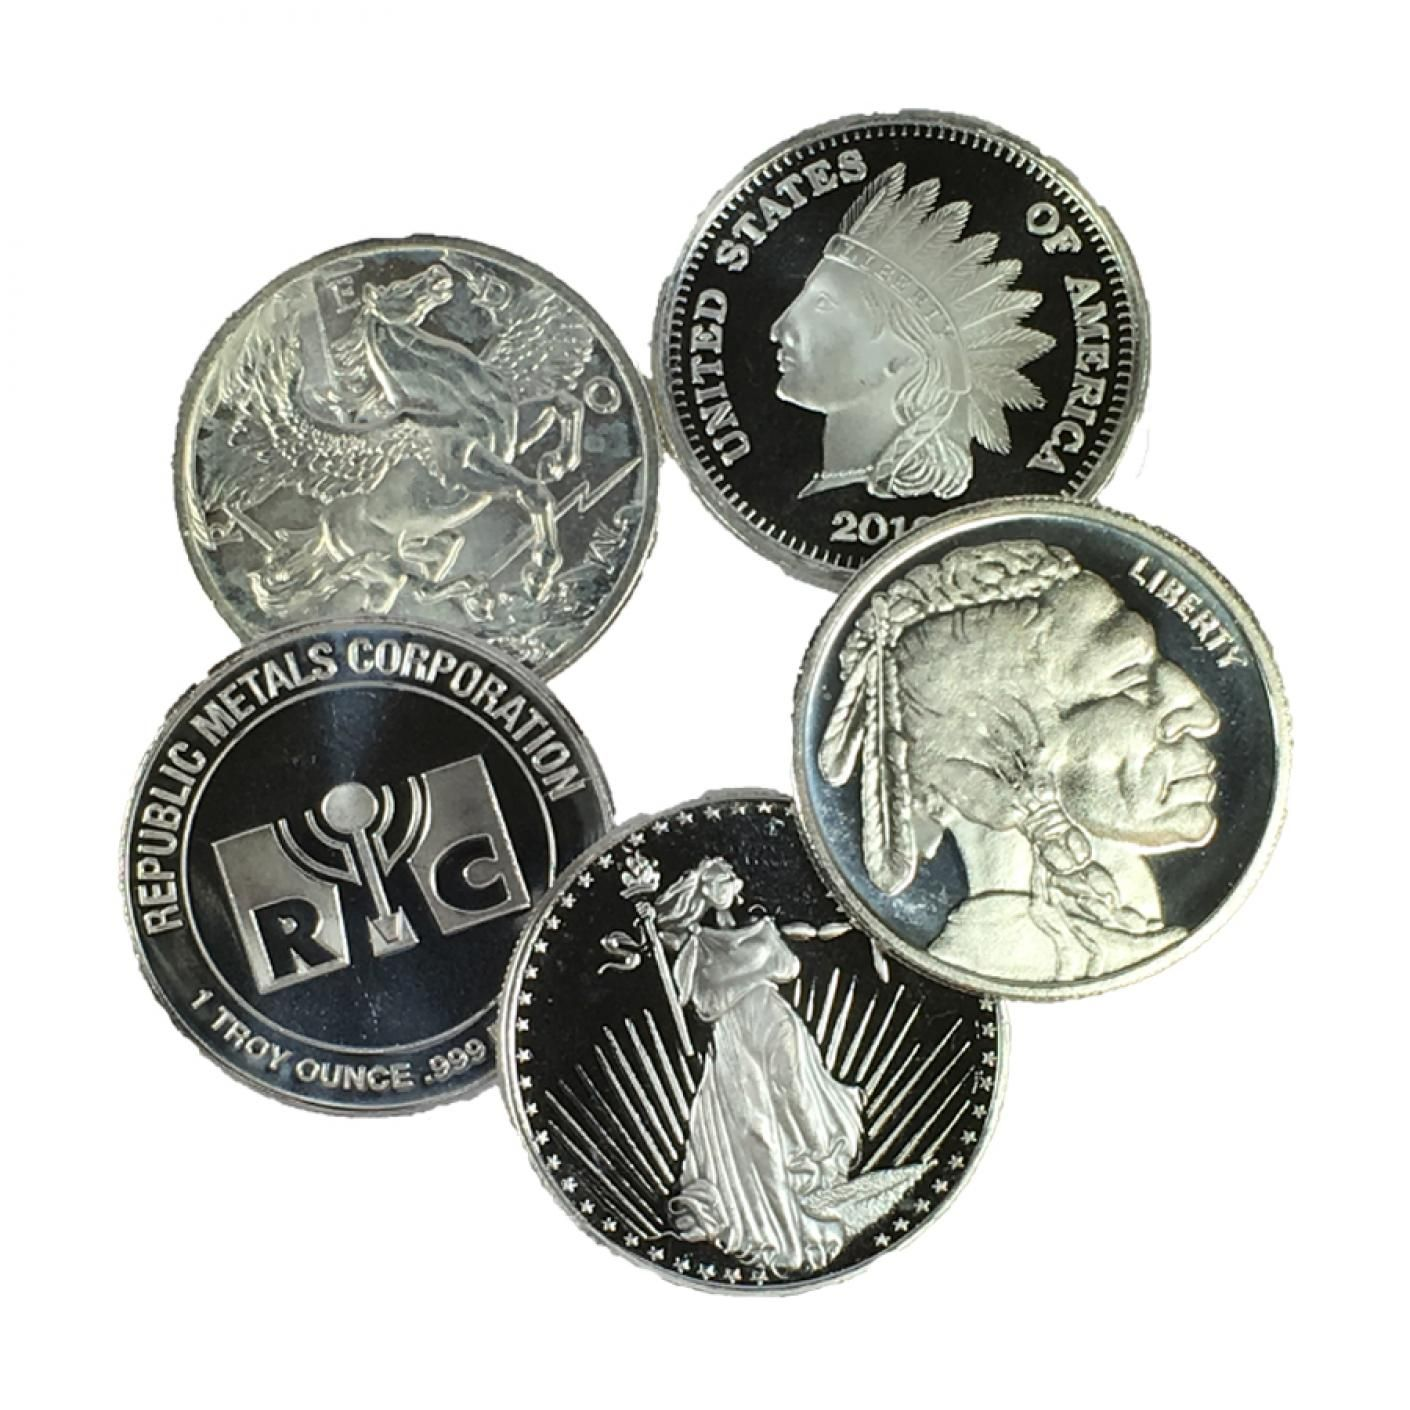 1 Oz Silver Rounds Generic Silver Rounds Silver Silver Bullion